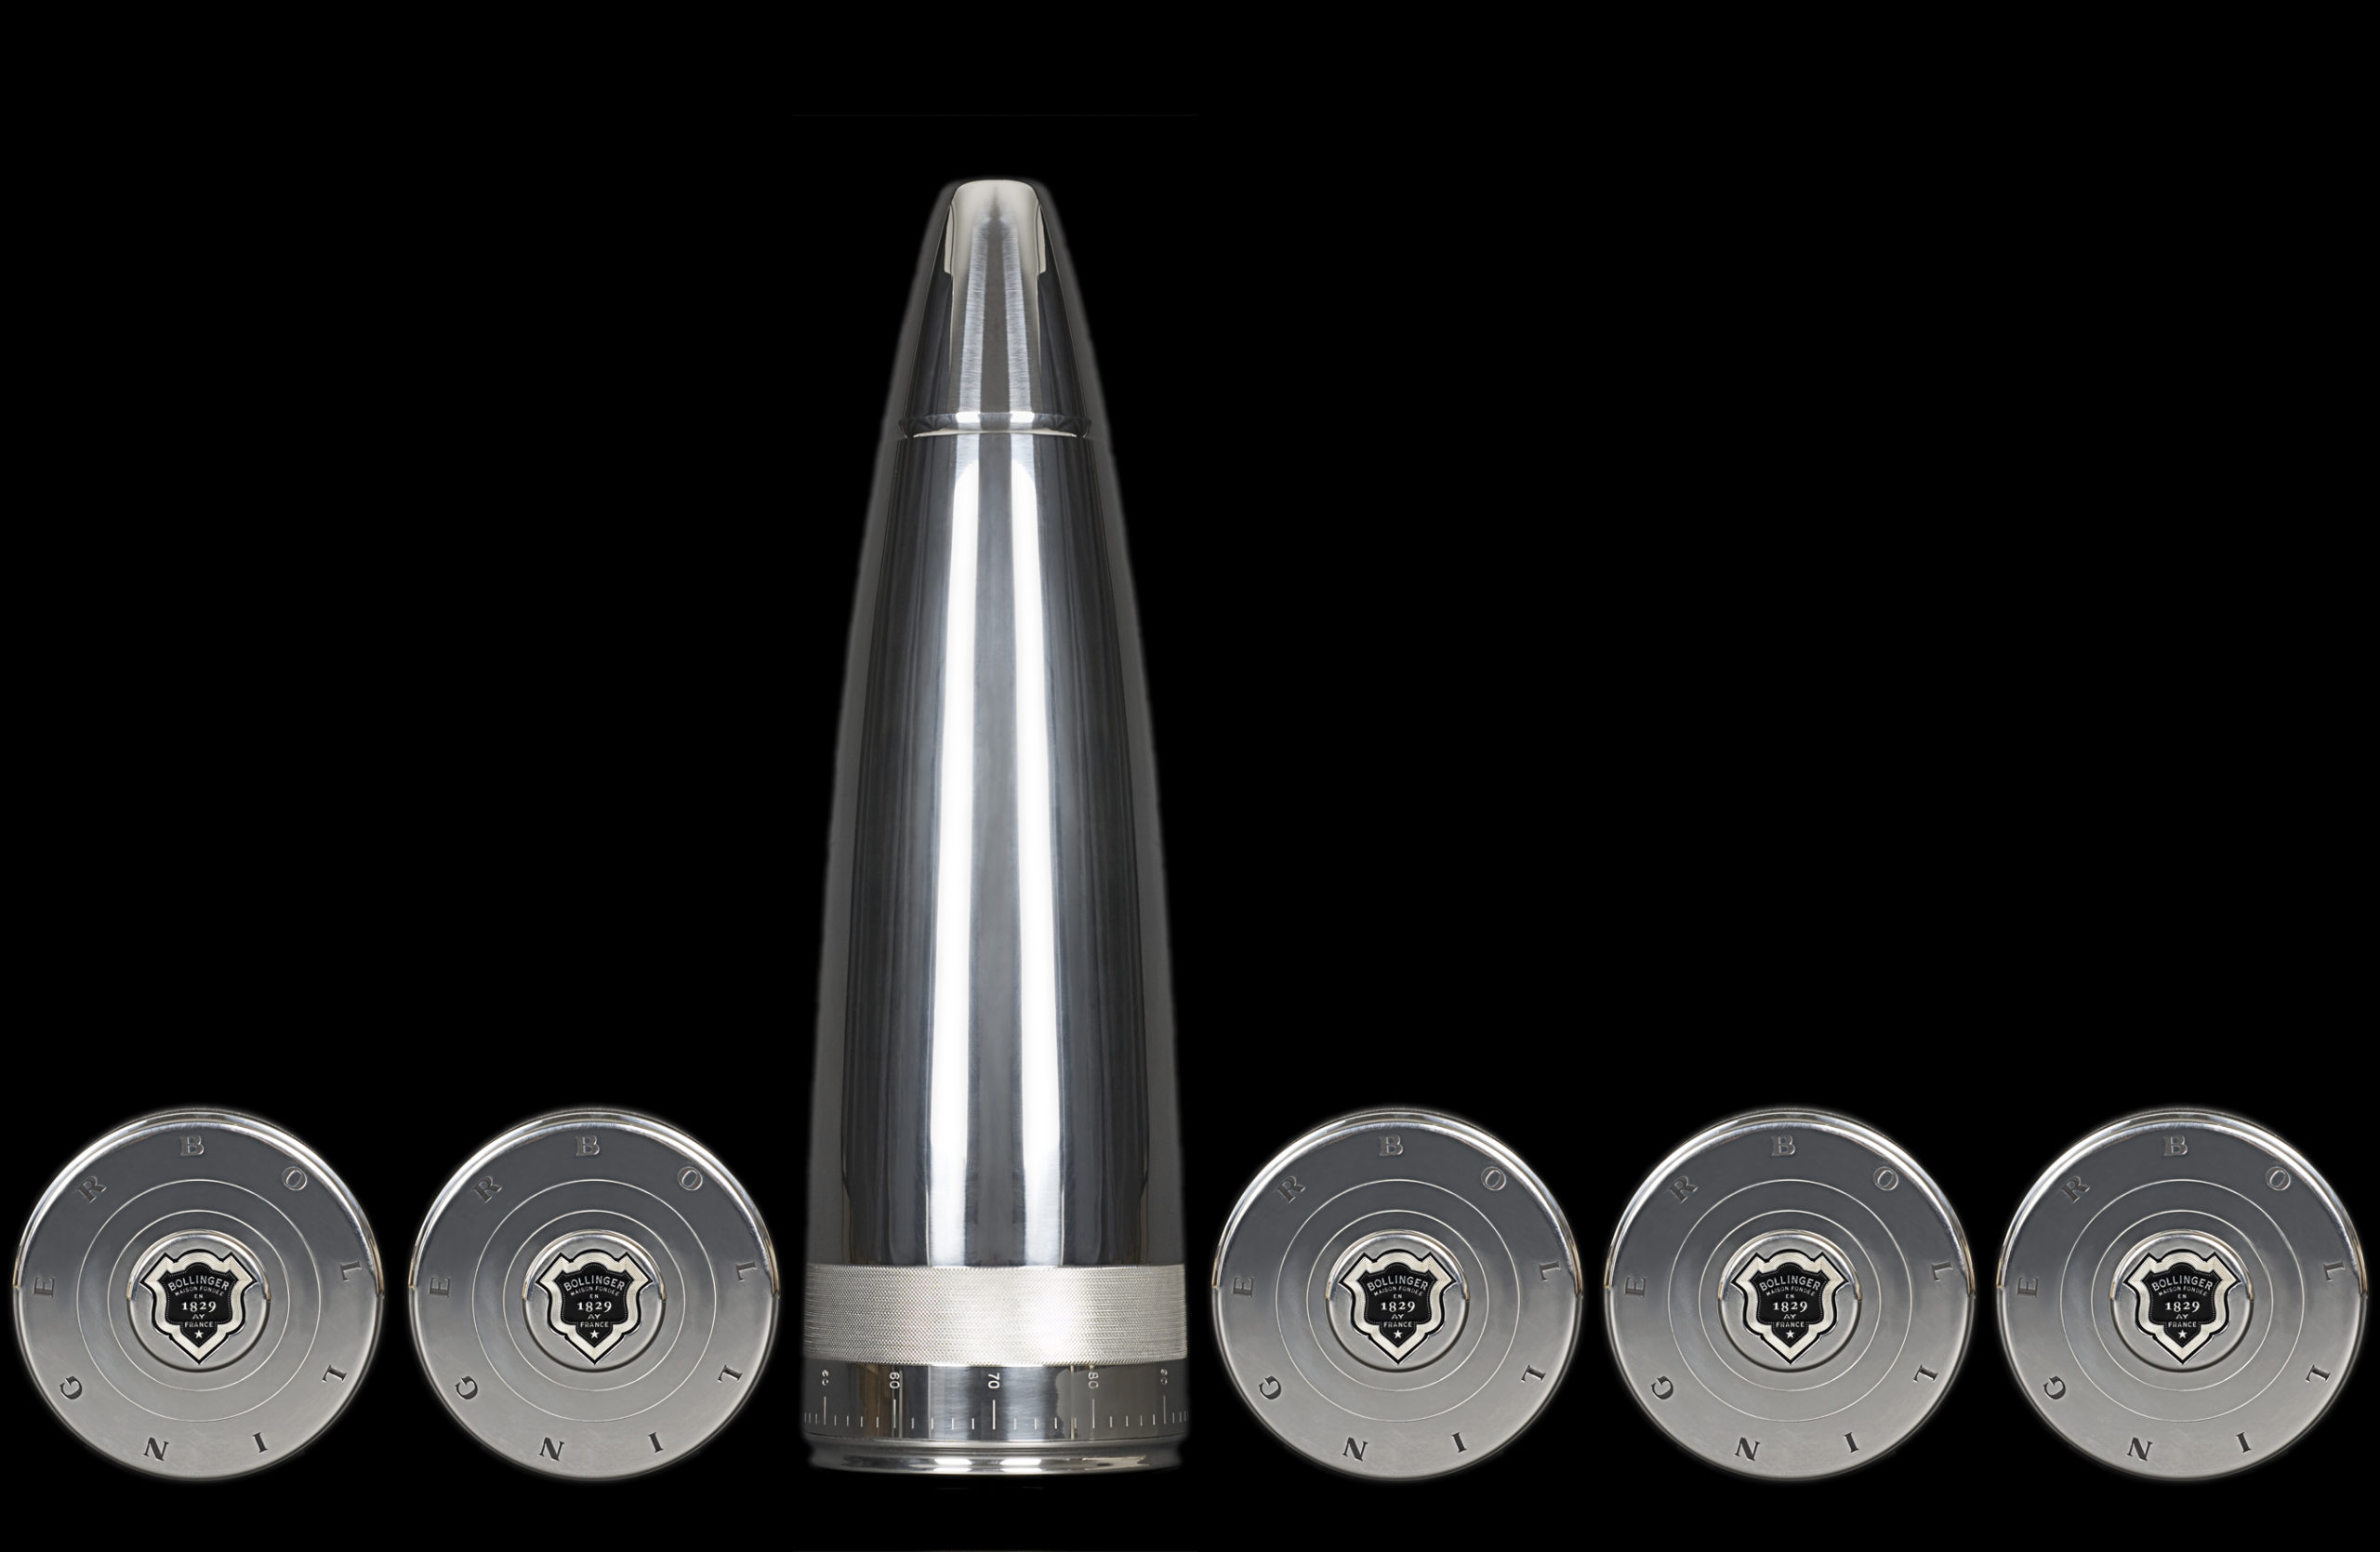 BOLLINGER_Bullet-007_DESIGN-PRODUIT_Spiritueux-Champagne-James-BondPLANET-DESIGN-PARIS-Eric-Berthes_01-scaled.jpg